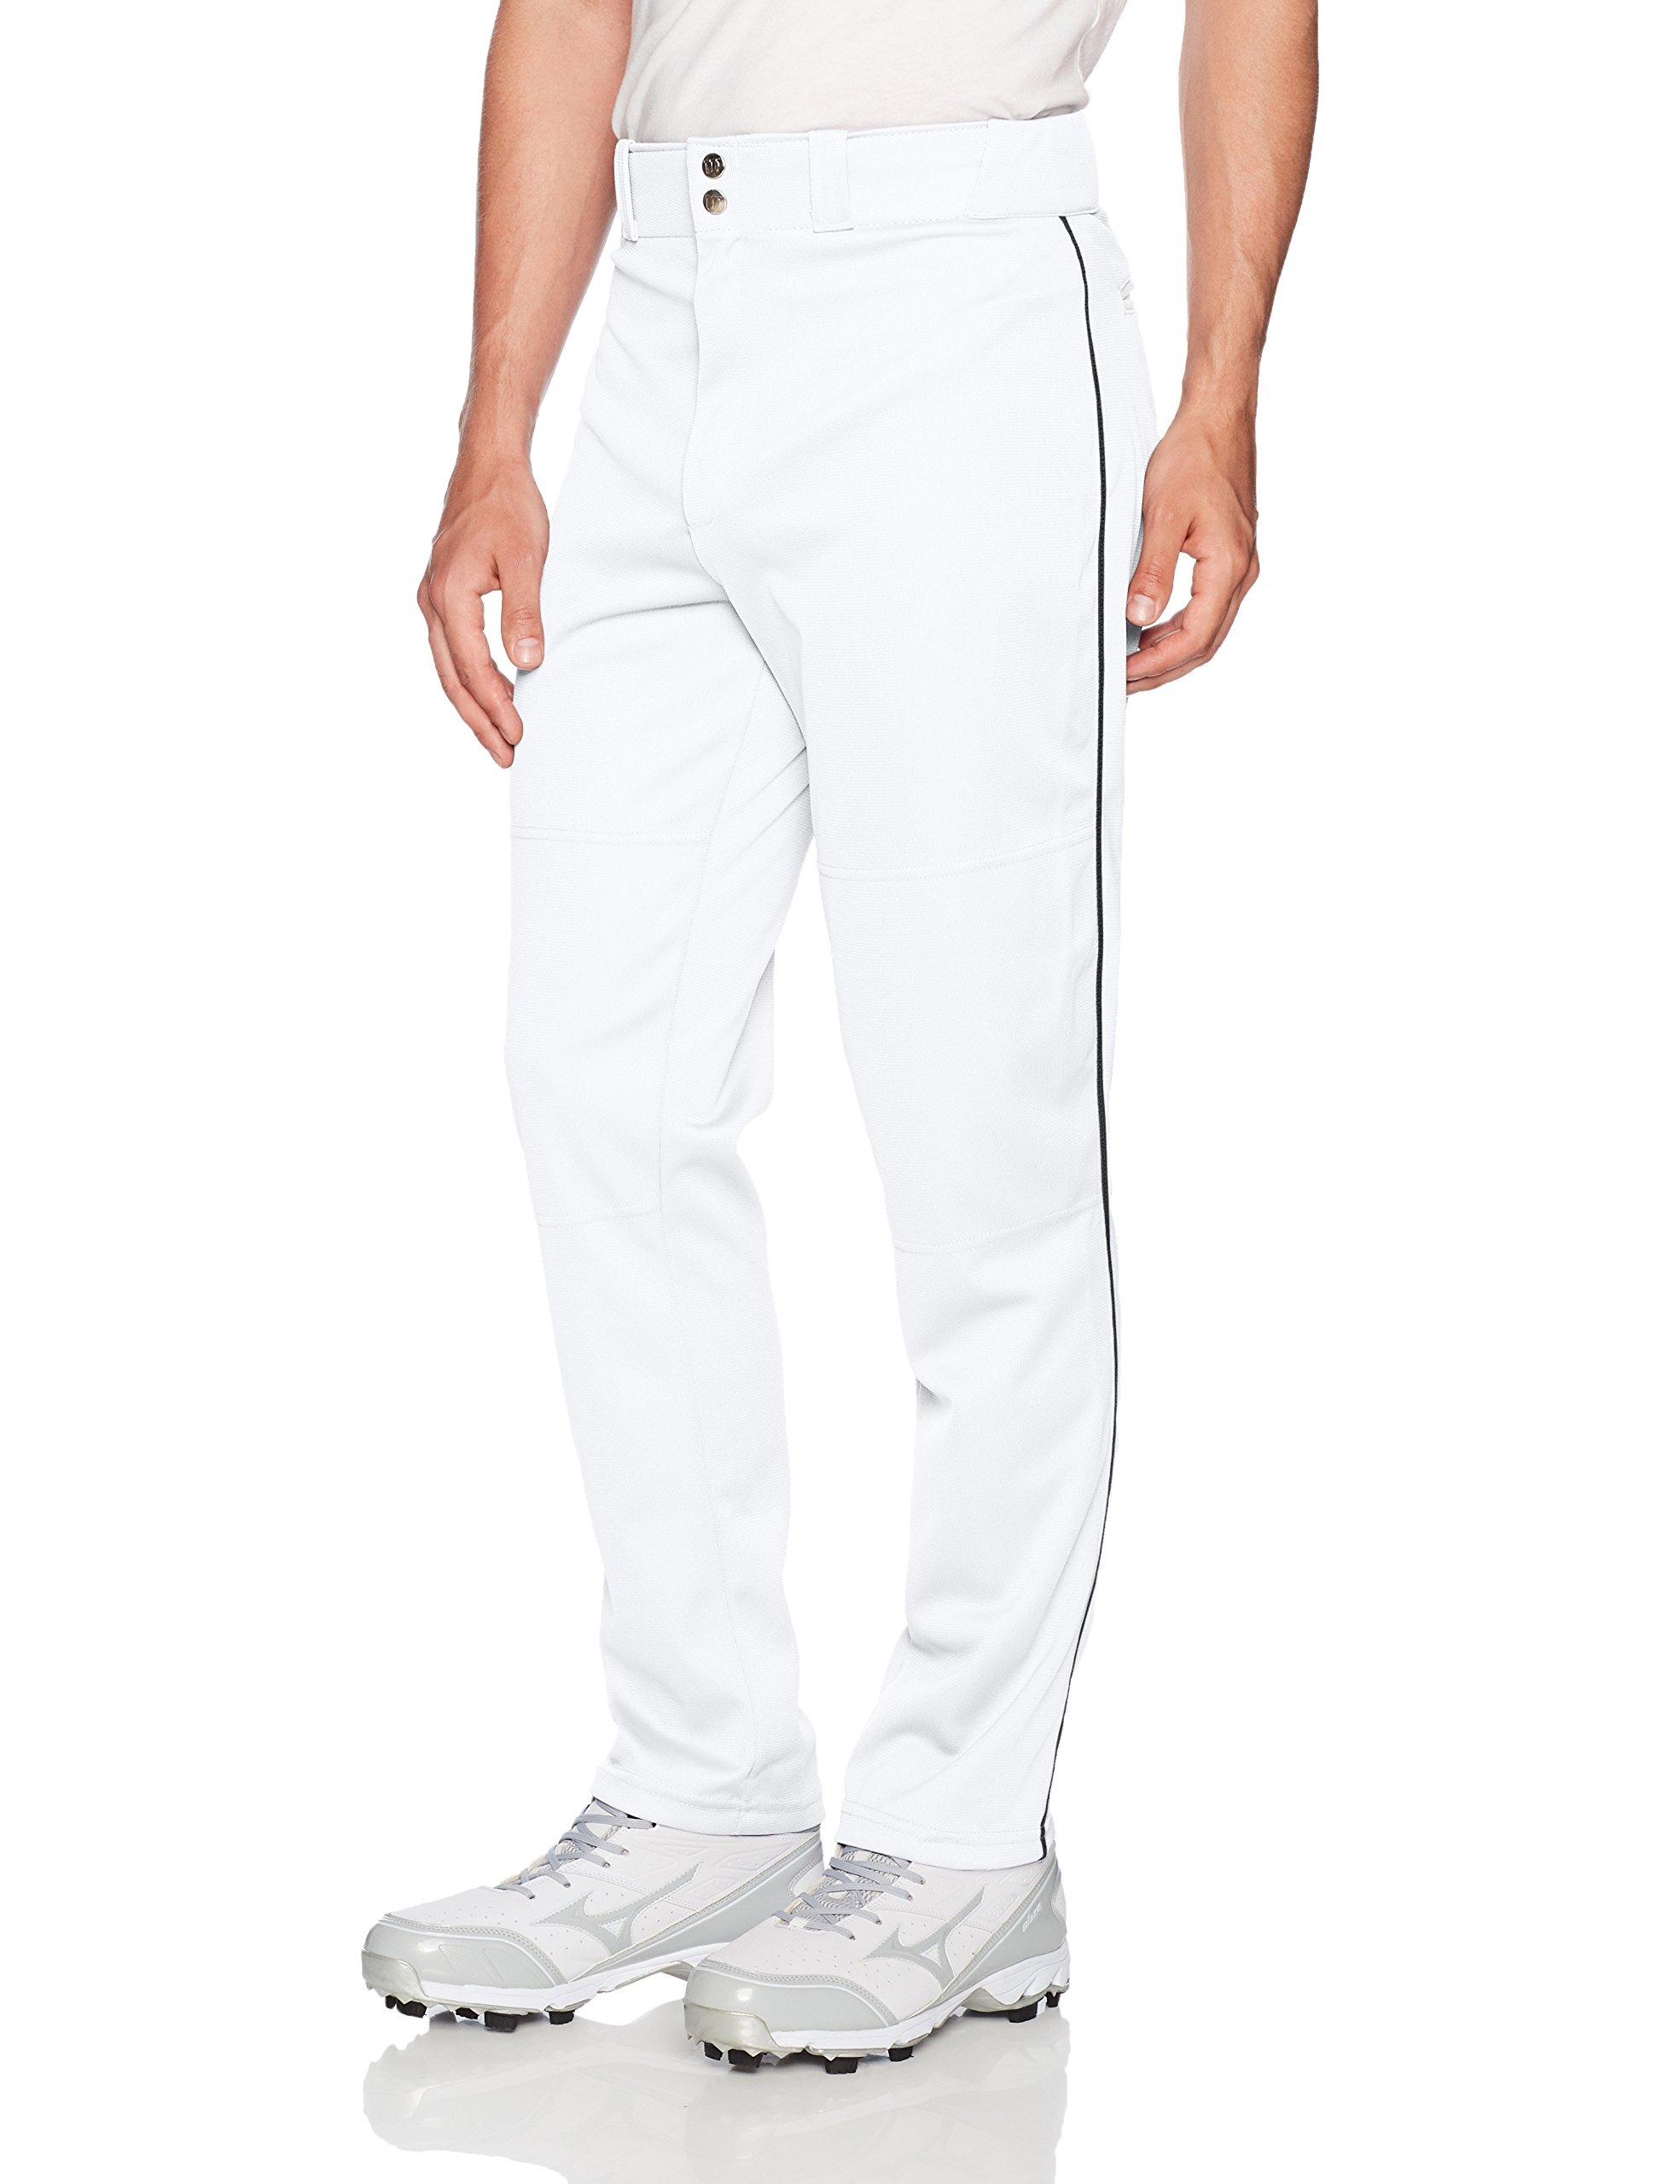 Wilson Men's Classic Relaxed Fit Piped Baseball Pant, White/Navy, Small by Wilson